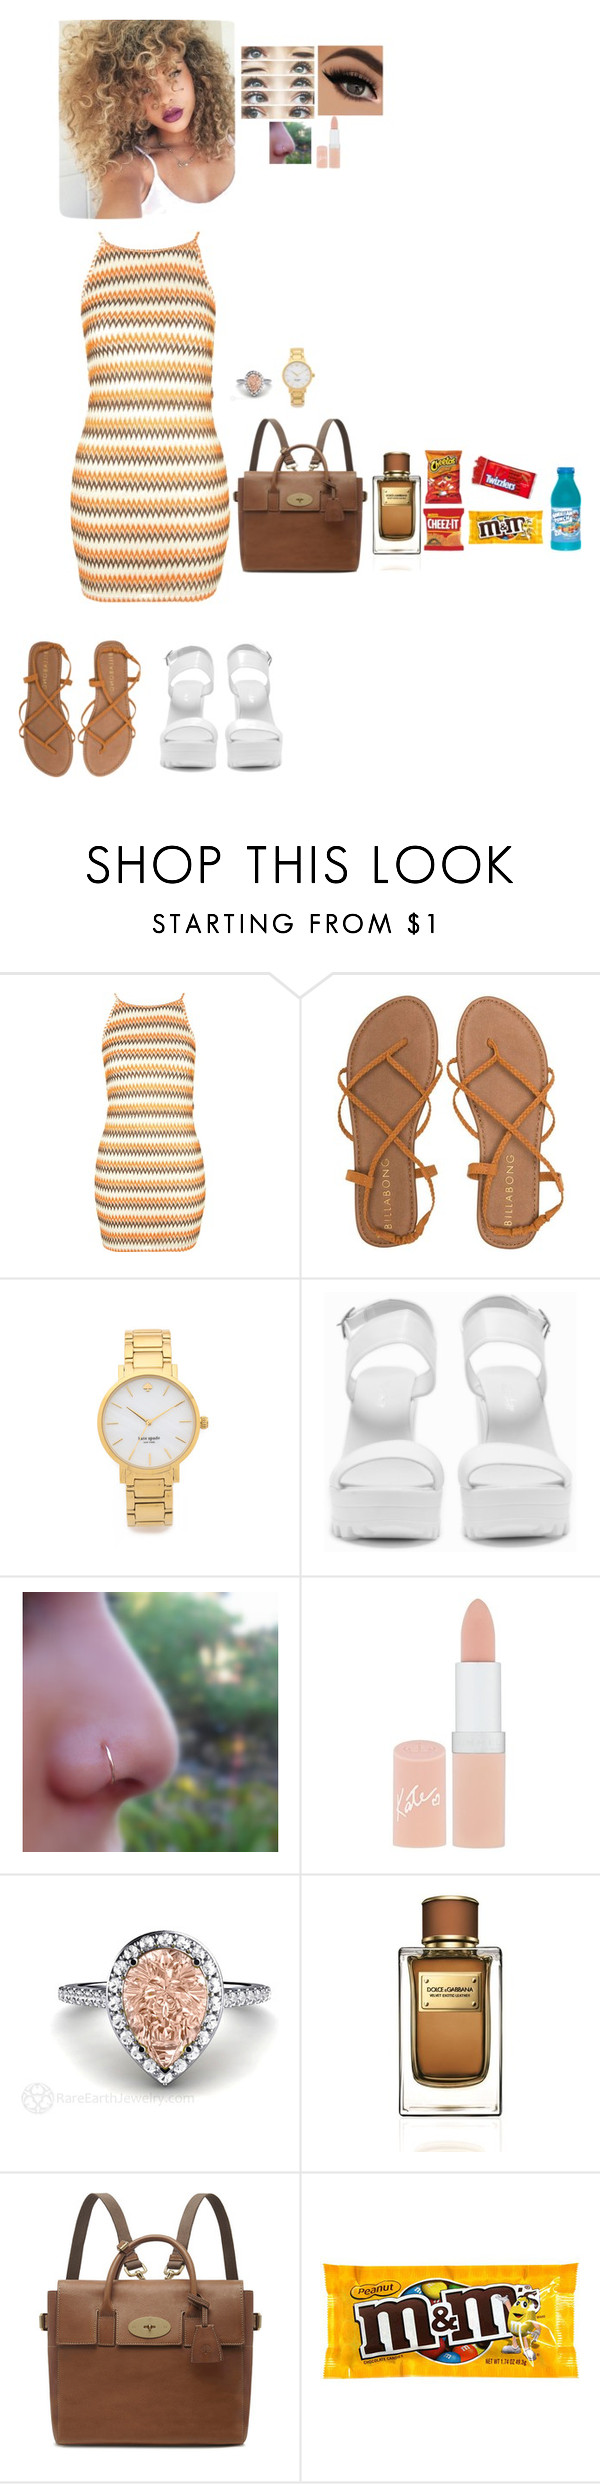 """Out in L.A."" by jaybirdie2000 ❤ liked on Polyvore featuring SkinCare, Topshop, Billabong, Kate Spade, Nly Shoes, Rimmel, Dolce&Gabbana and Hershey's"